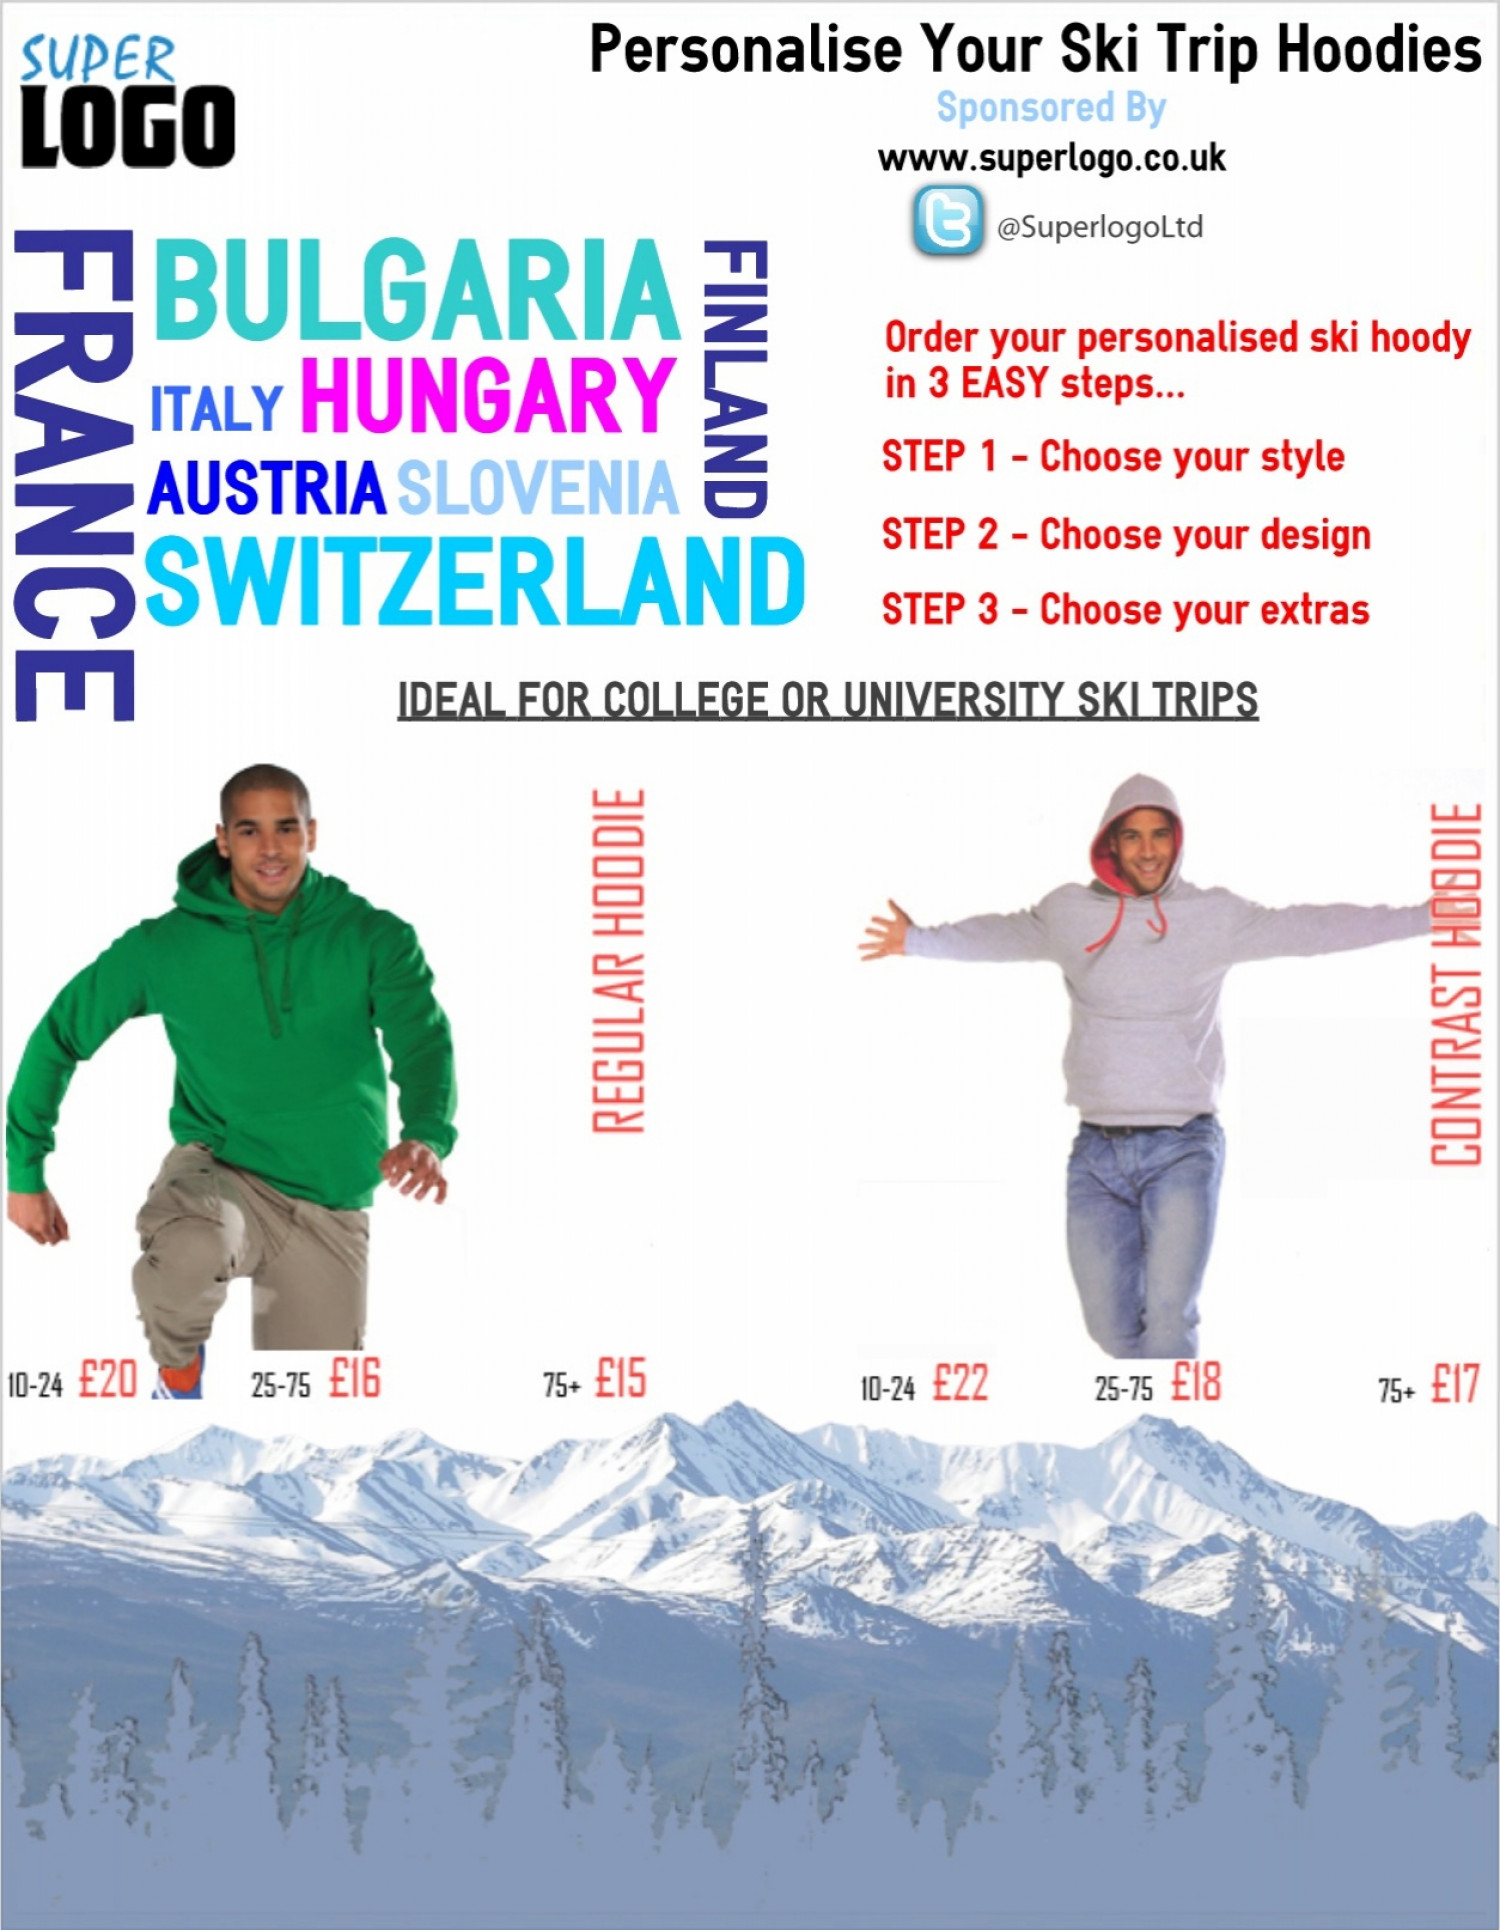 Personalise Your Ski Trip Hoodies Infographic